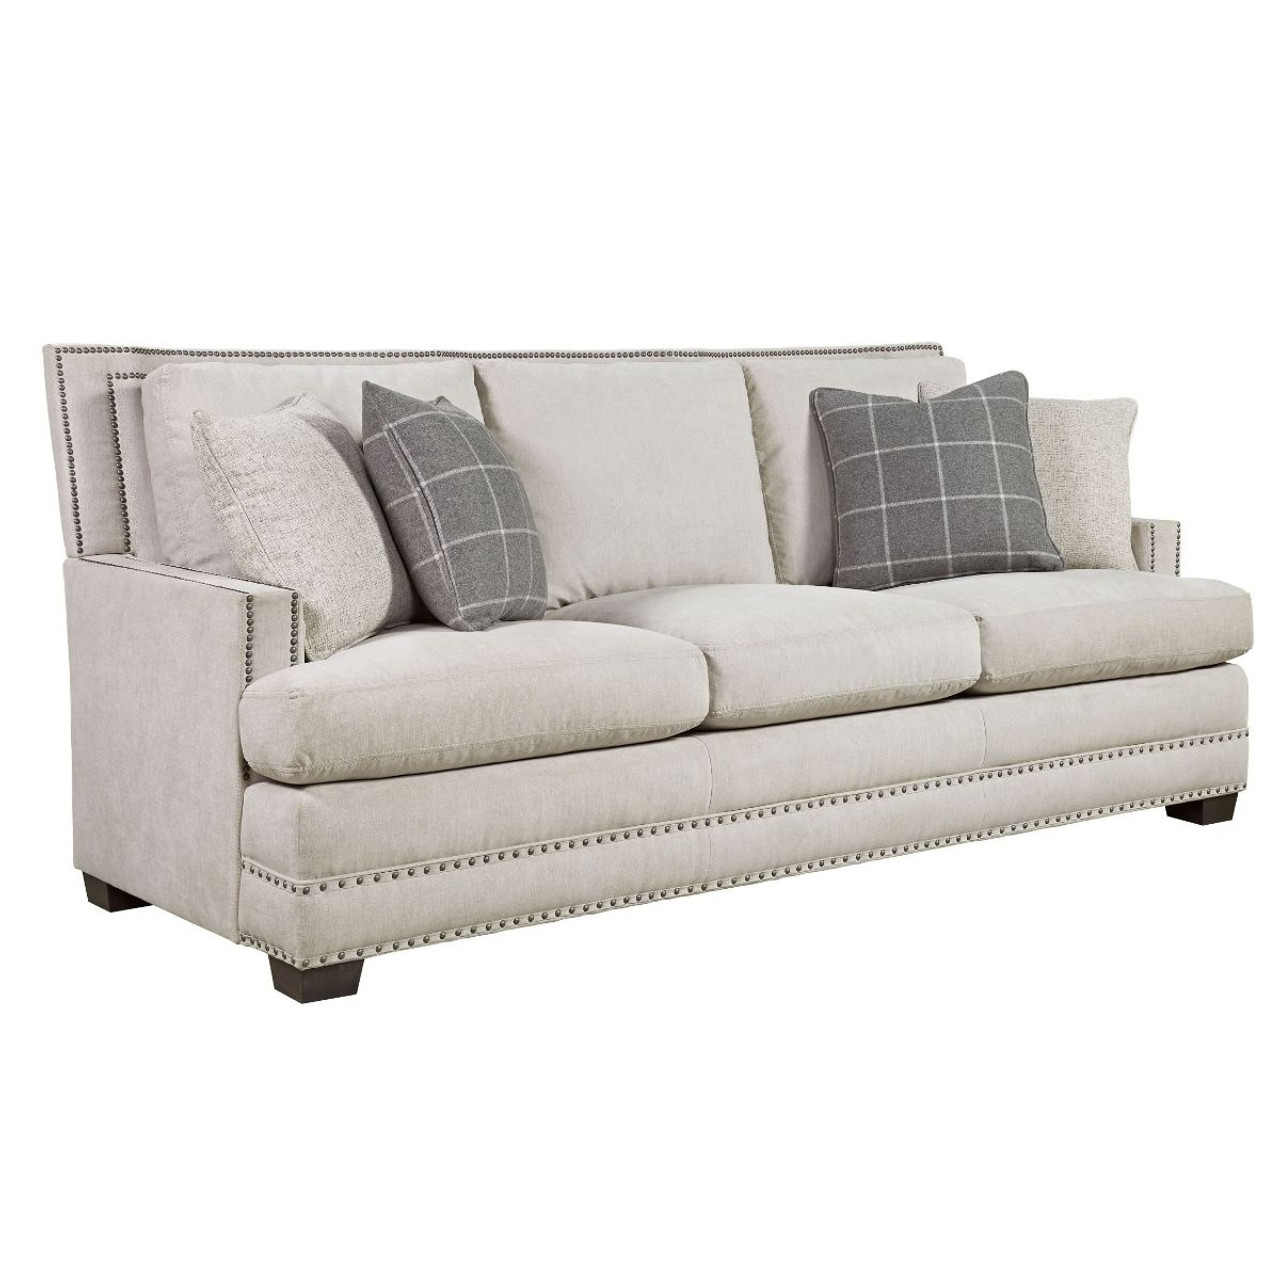 Delightful Franklin Upholstered 3 Seat Sofa With Nailheads